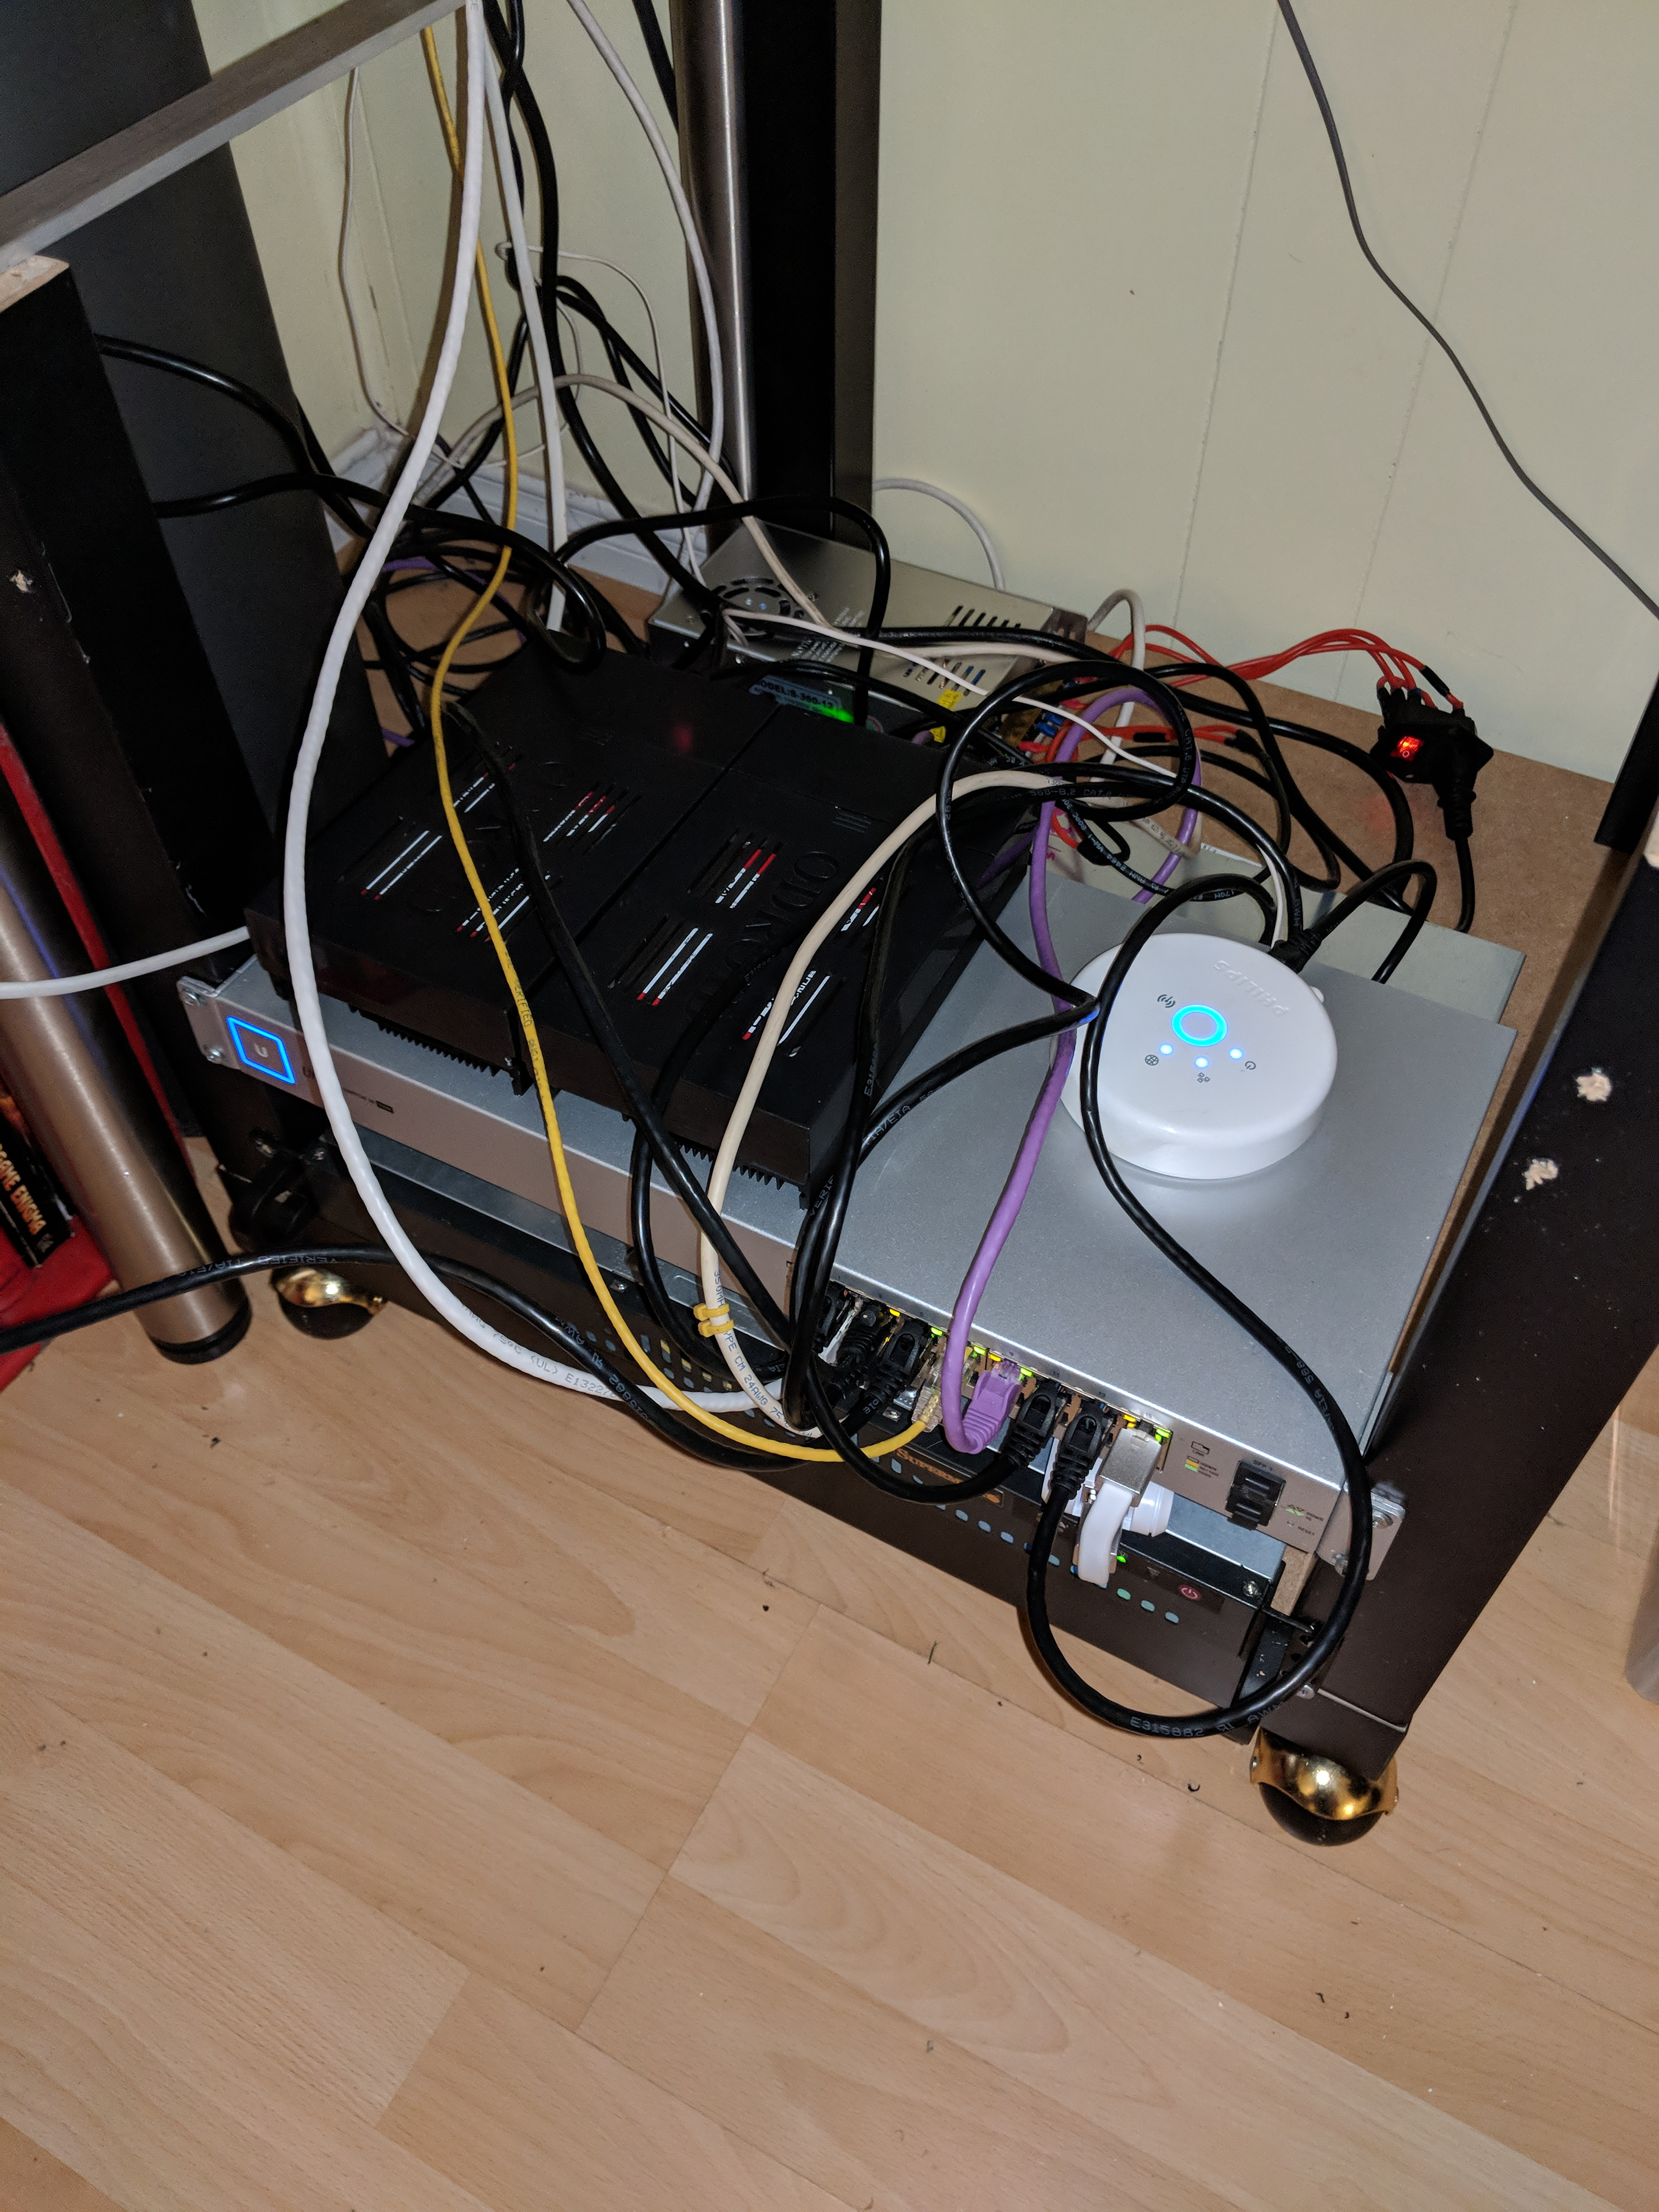 Using two ODROID HC2's to create a small NAS with GLUSTERFS